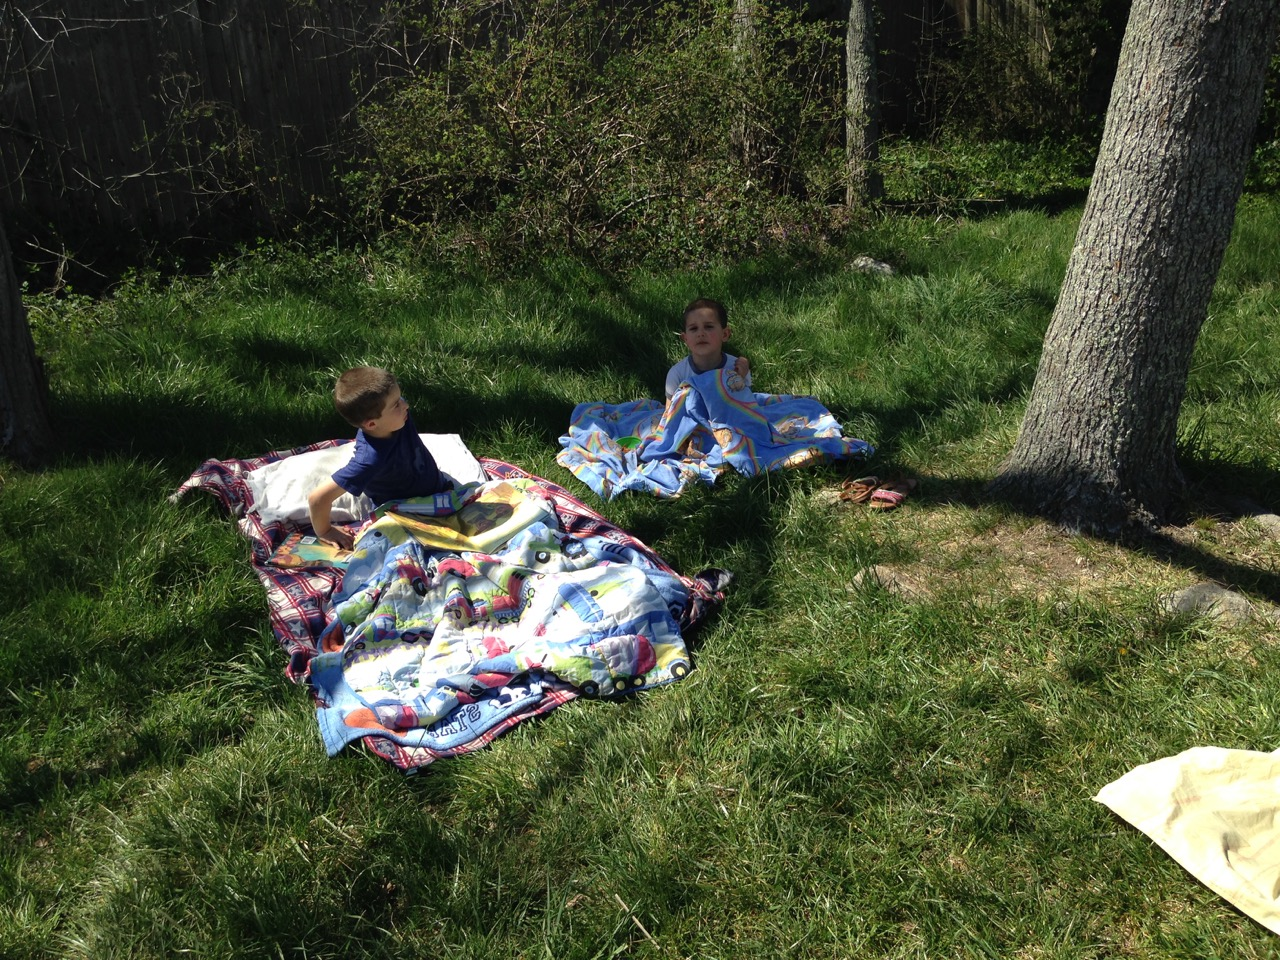 The boys camp out under the trees.